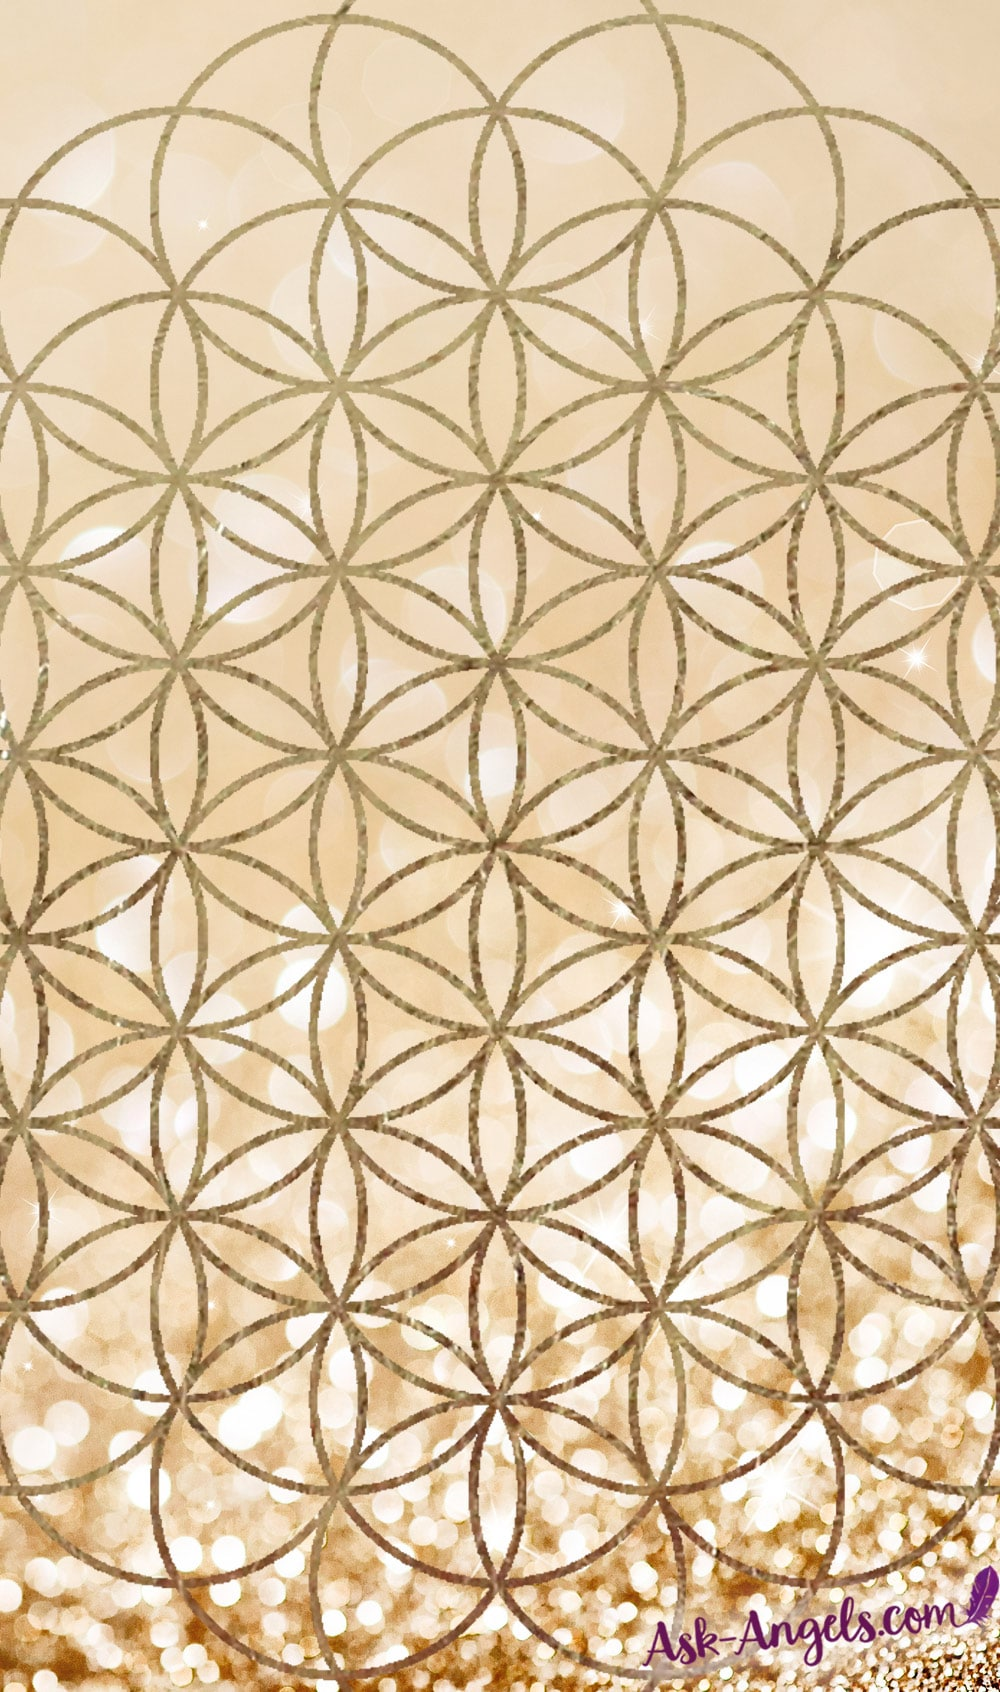 Flower of Life Meditation